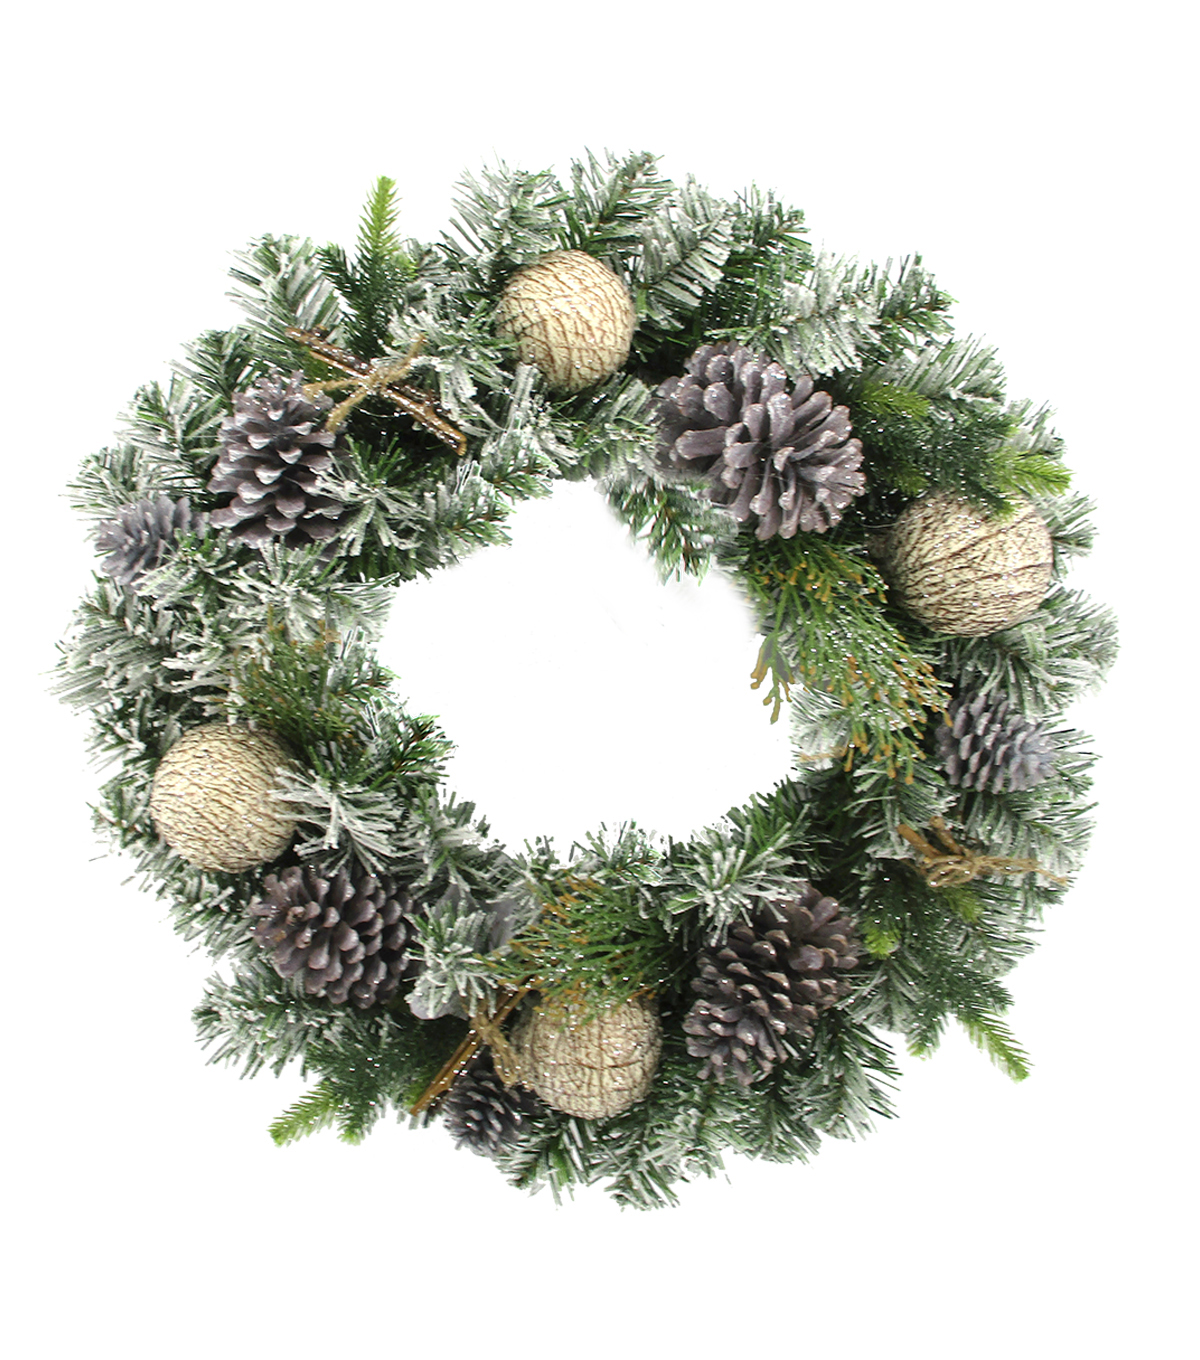 Handmade Holiday Christmas Frosted Pinecone & Birch Ornament Wreath